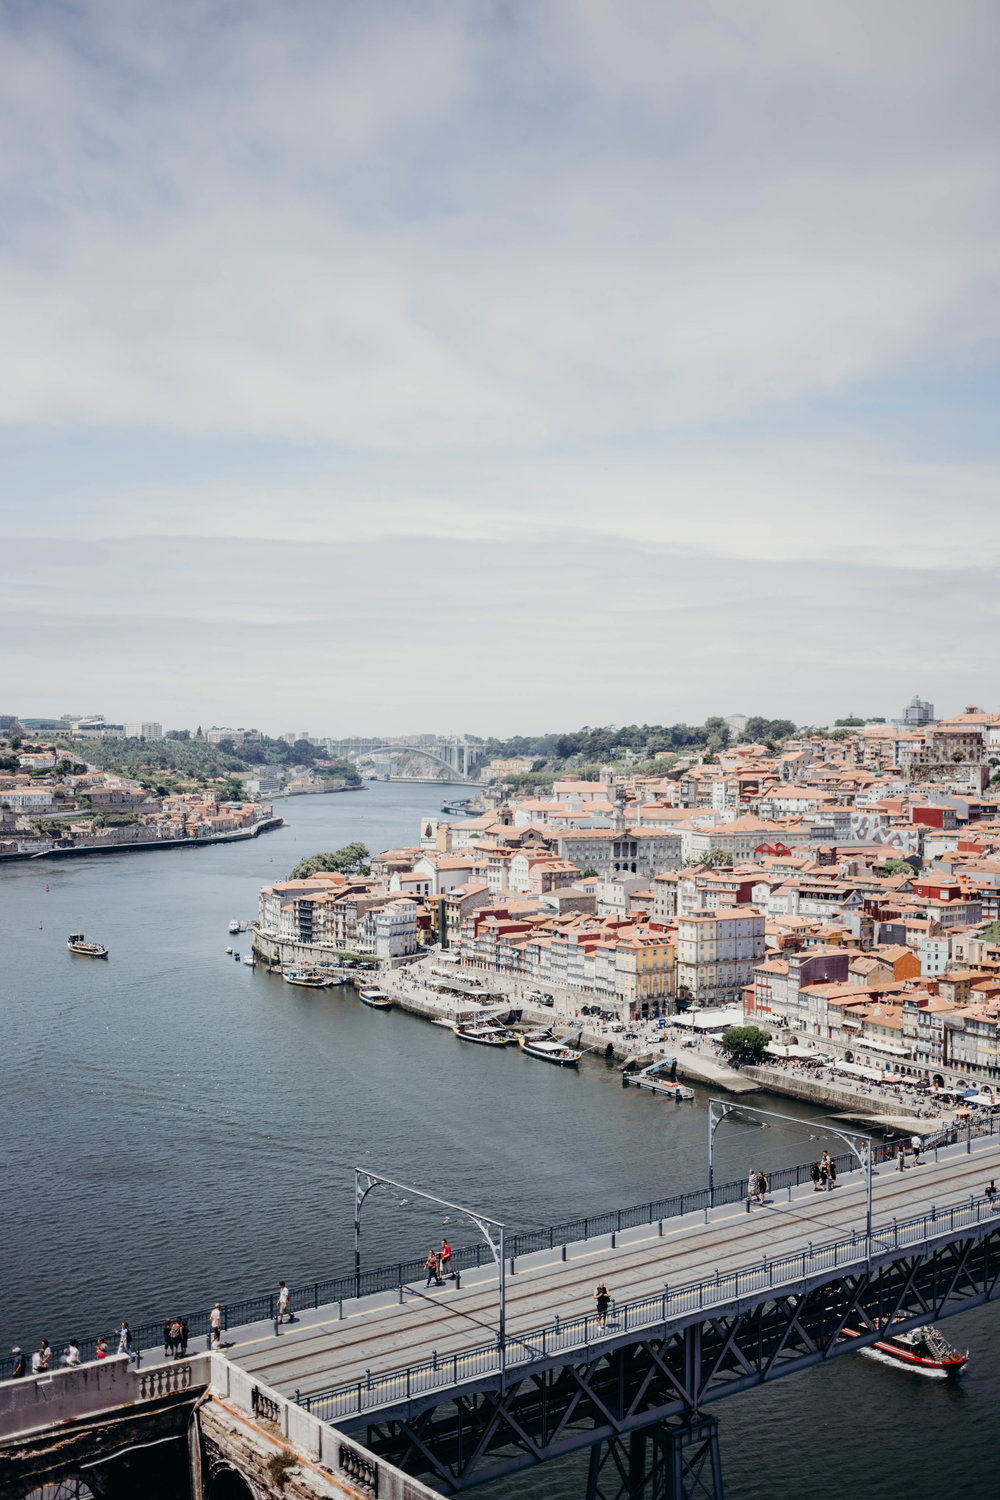 Our Portugal Travel Diary: Lisbon, Porto, and More | On the Street Where We Live (aretherelilactrees.com)  Ribeira-Rio Douro, Dom Luis I Bridge